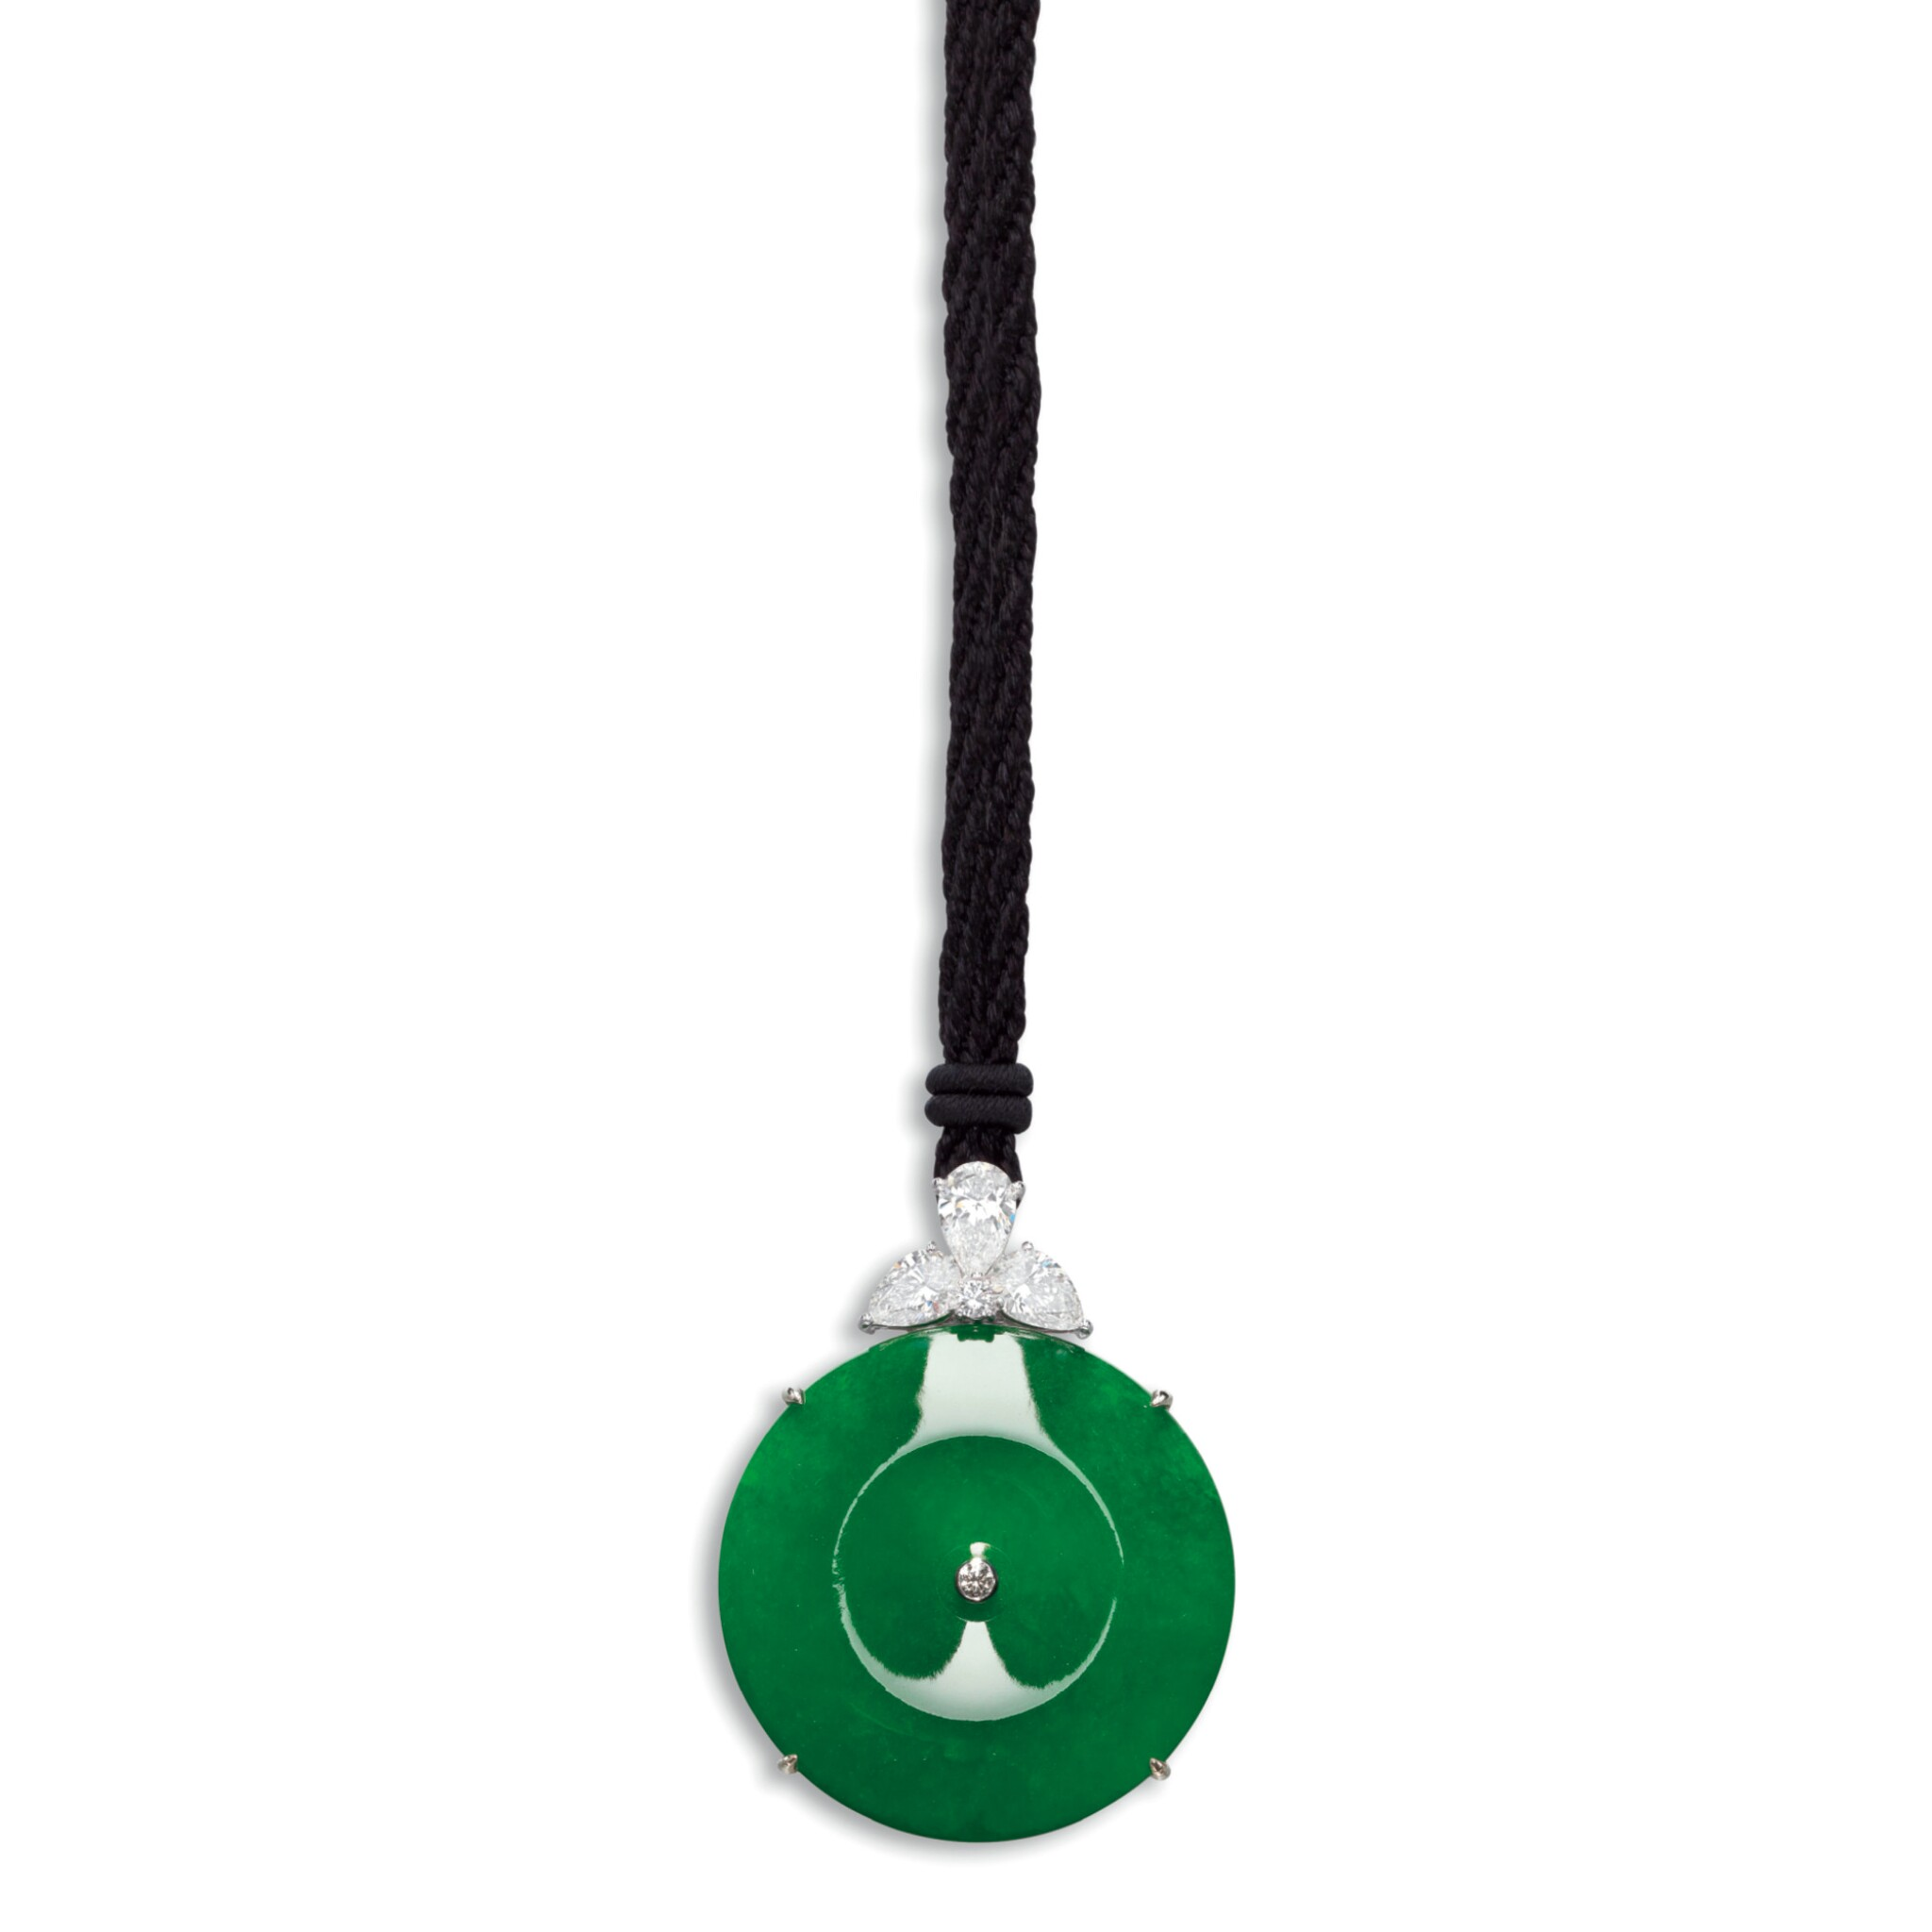 View full screen - View 1 of Lot 1671. A FINE AND RARE JADEITE, DIAMOND AND SAPPHIRE PENDENT NECKLACE   天然翡翠雕「懷古」 配 鑽石 及 藍寶石 項鏈   .